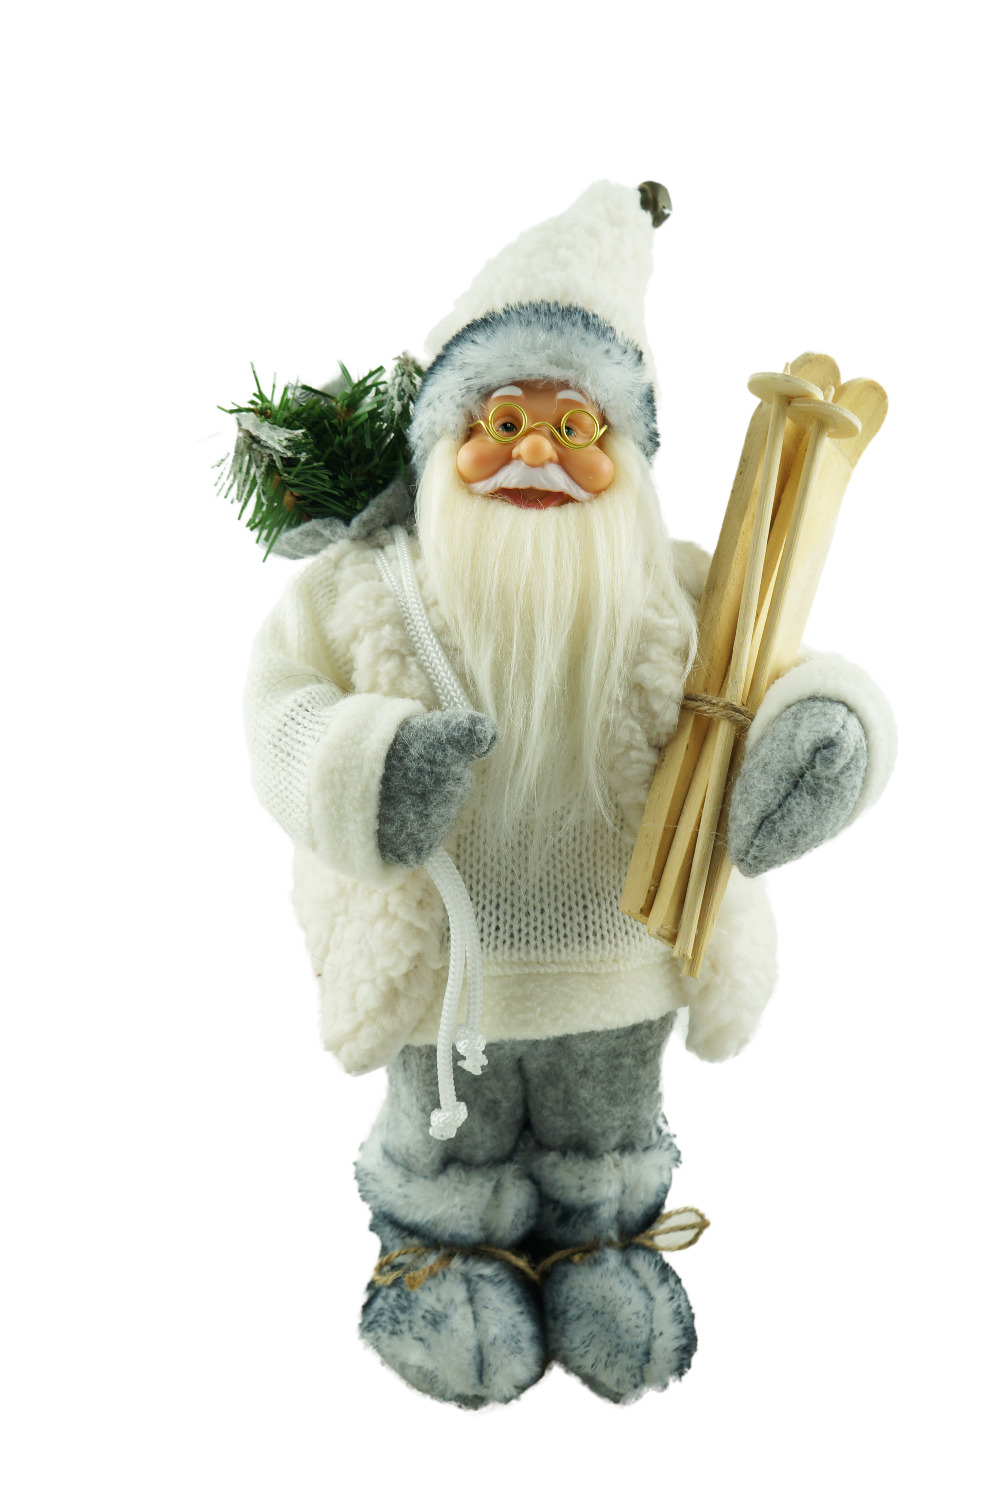 Home Decoration Collection Us 17 99 Doll Santa Claus Christmas Father Toy For Home Decoration Collection 12